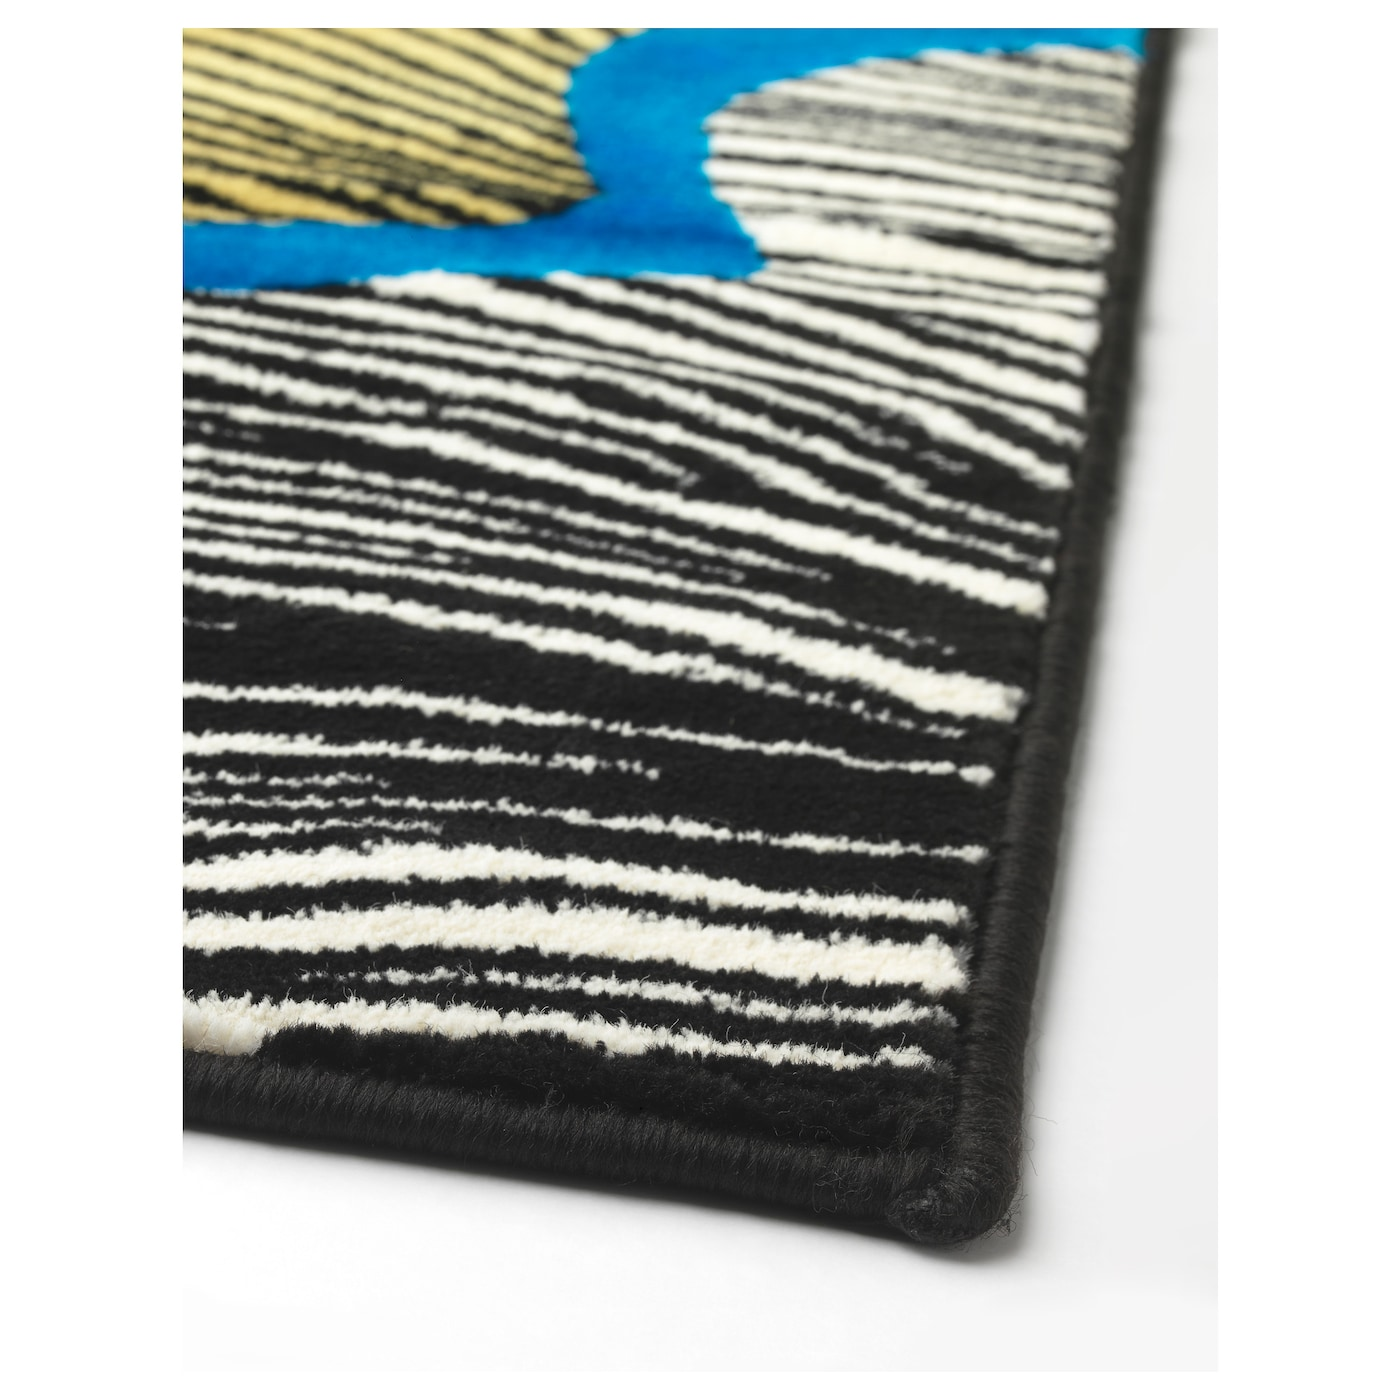 IKEA DOFTRANKA rug, low pile The thick pile dampens sound and provides a soft surface to walk on.